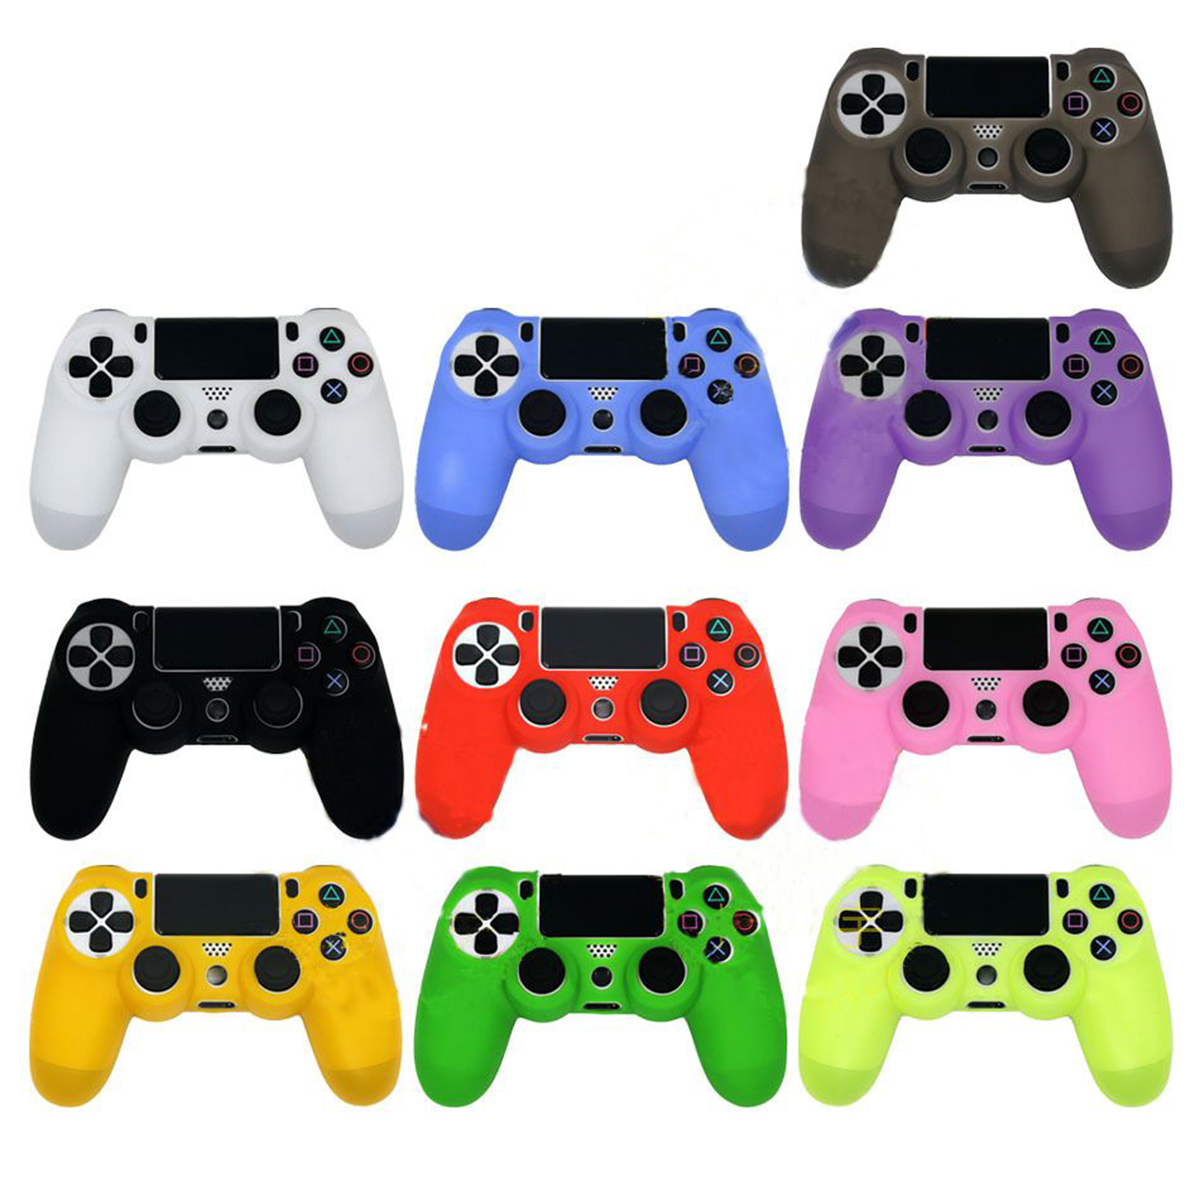 For PS4 Sony Playstation 4 Slim Controller Case Silicone Soft Flexible Gel Rubber Shell Cover Video Game Controller Accessory